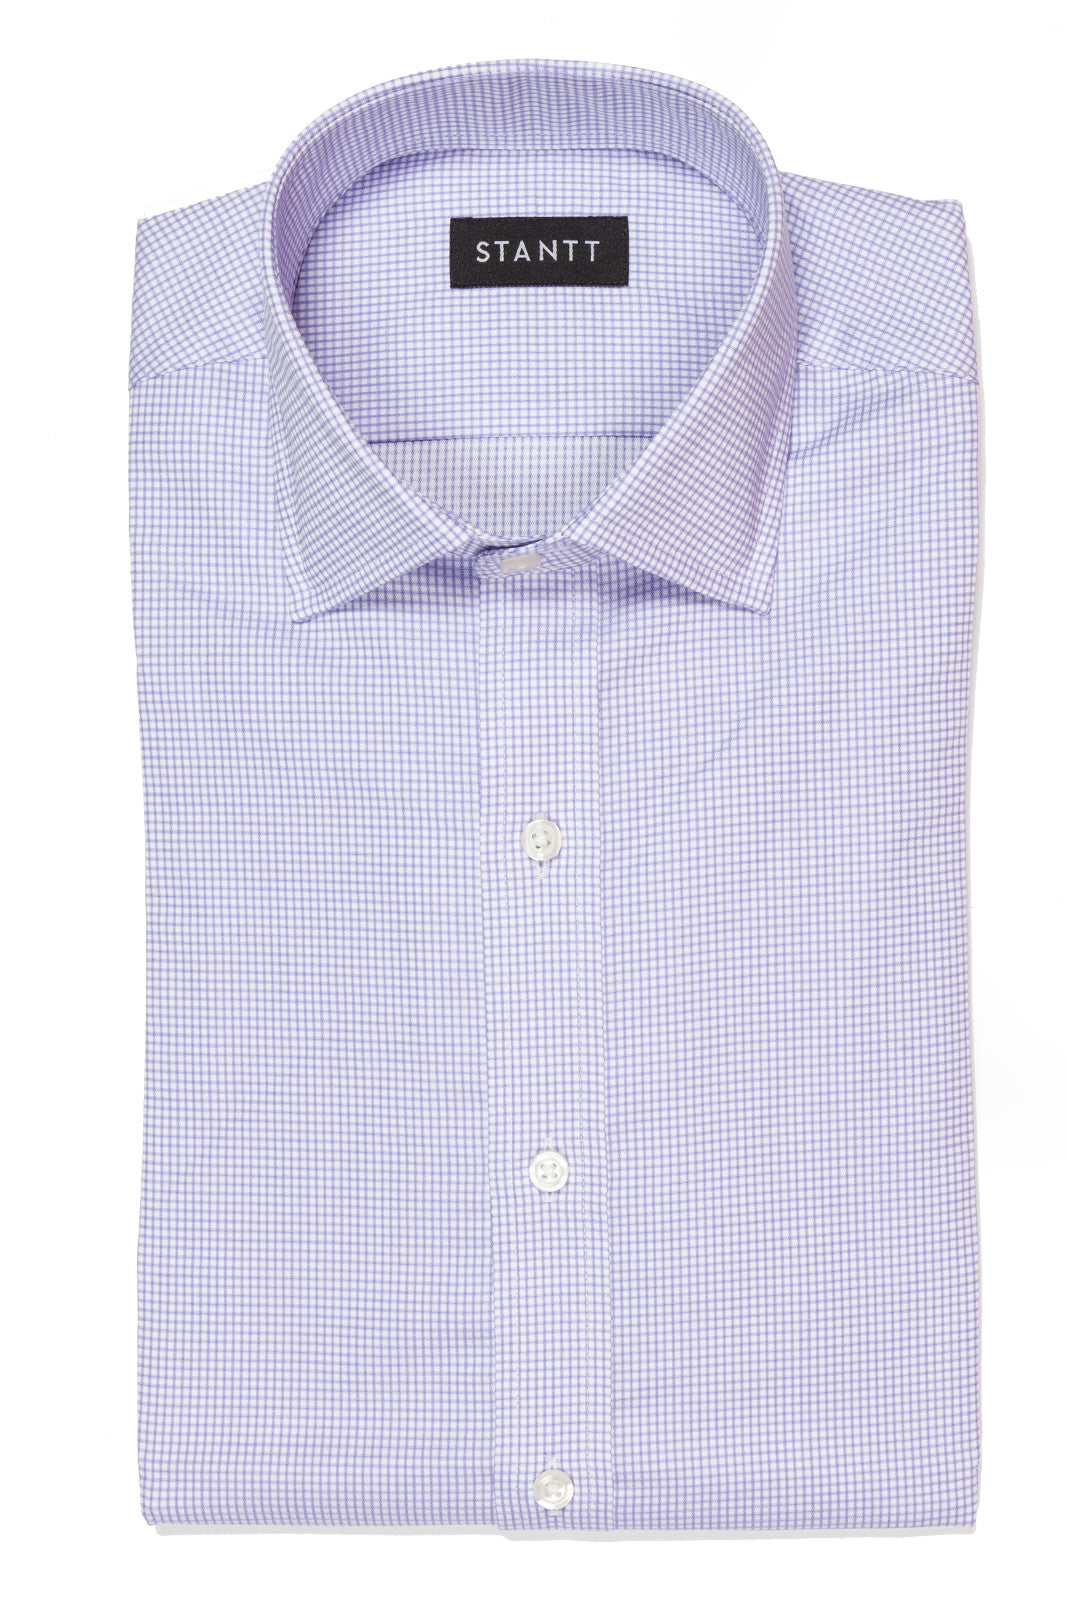 Wrinkle-Resistant Purple Accented Mini-Check: Modified-Spread Collar, French Cuff